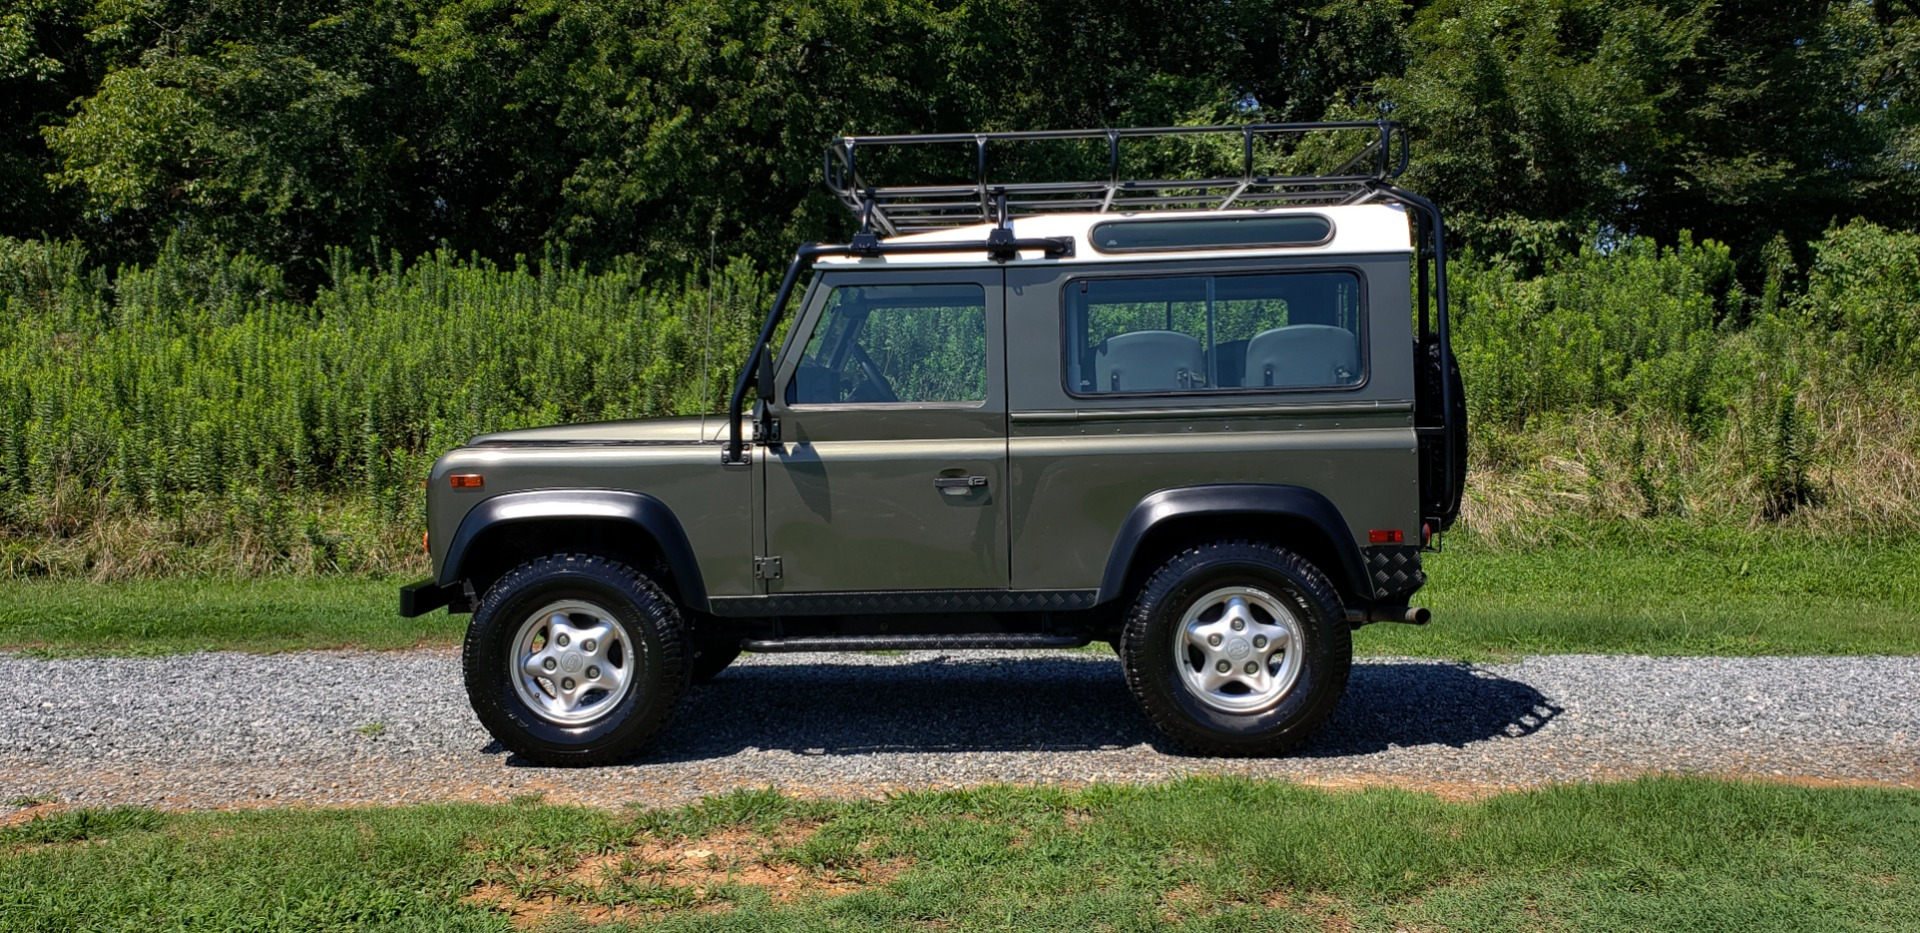 Used 1997 Land Rover DEFENDER 90 LIMITED EDITION / HARD-TOP / 4WD / FULLY RESTORED / LOW MILES for sale $119,000 at Formula Imports in Charlotte NC 28227 3